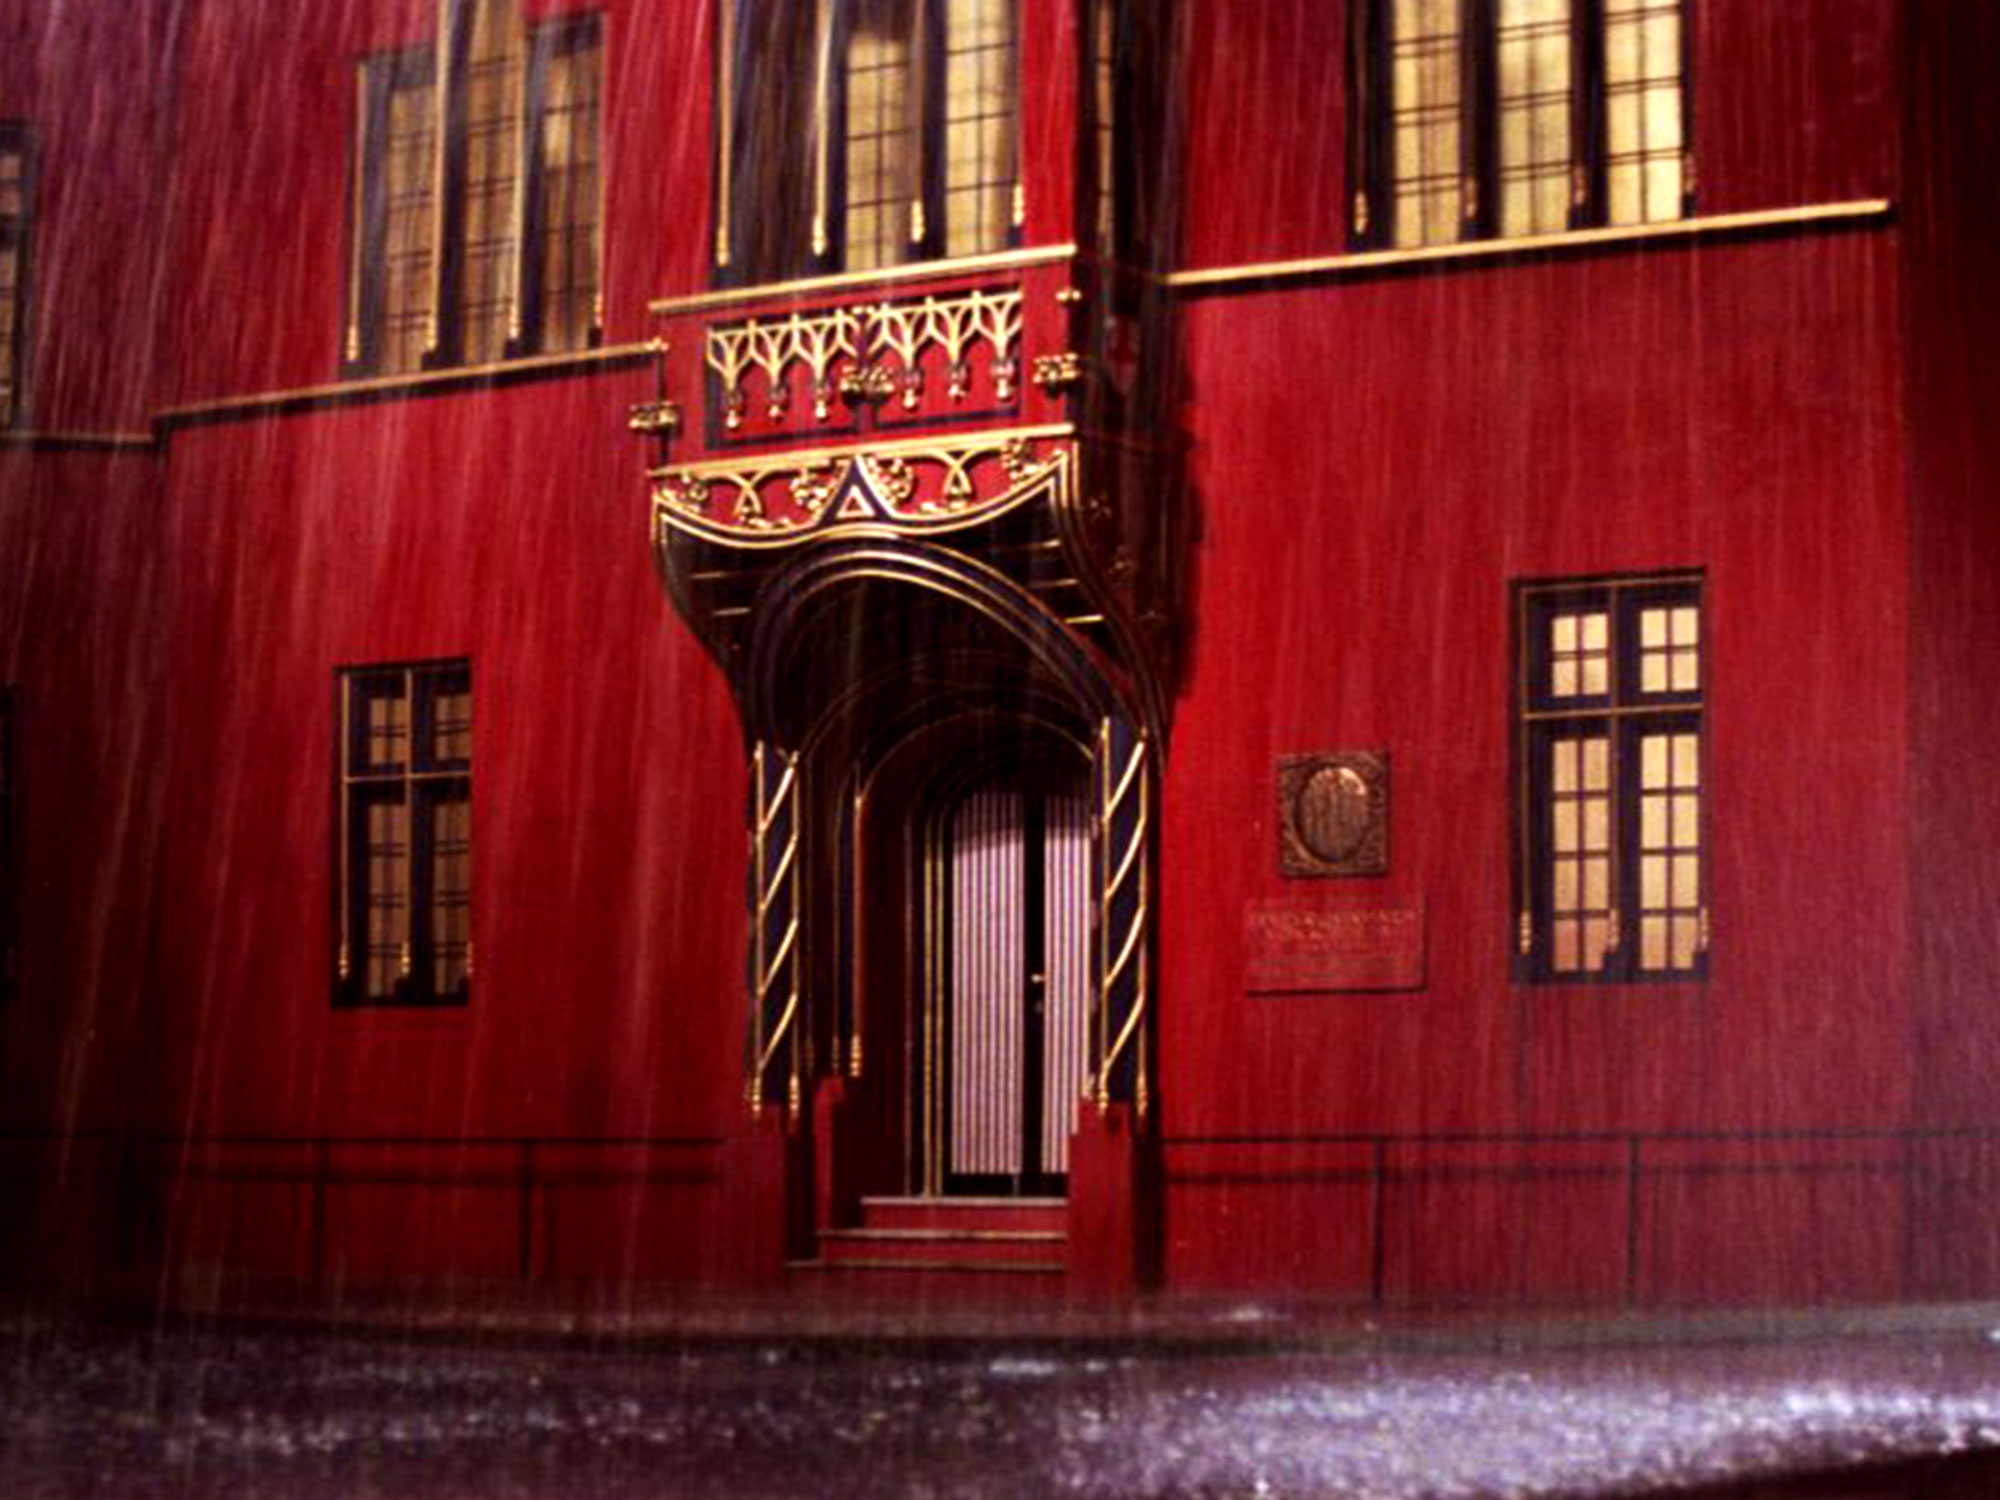 On Location: The dance academy from Dario Argento's Suspiria